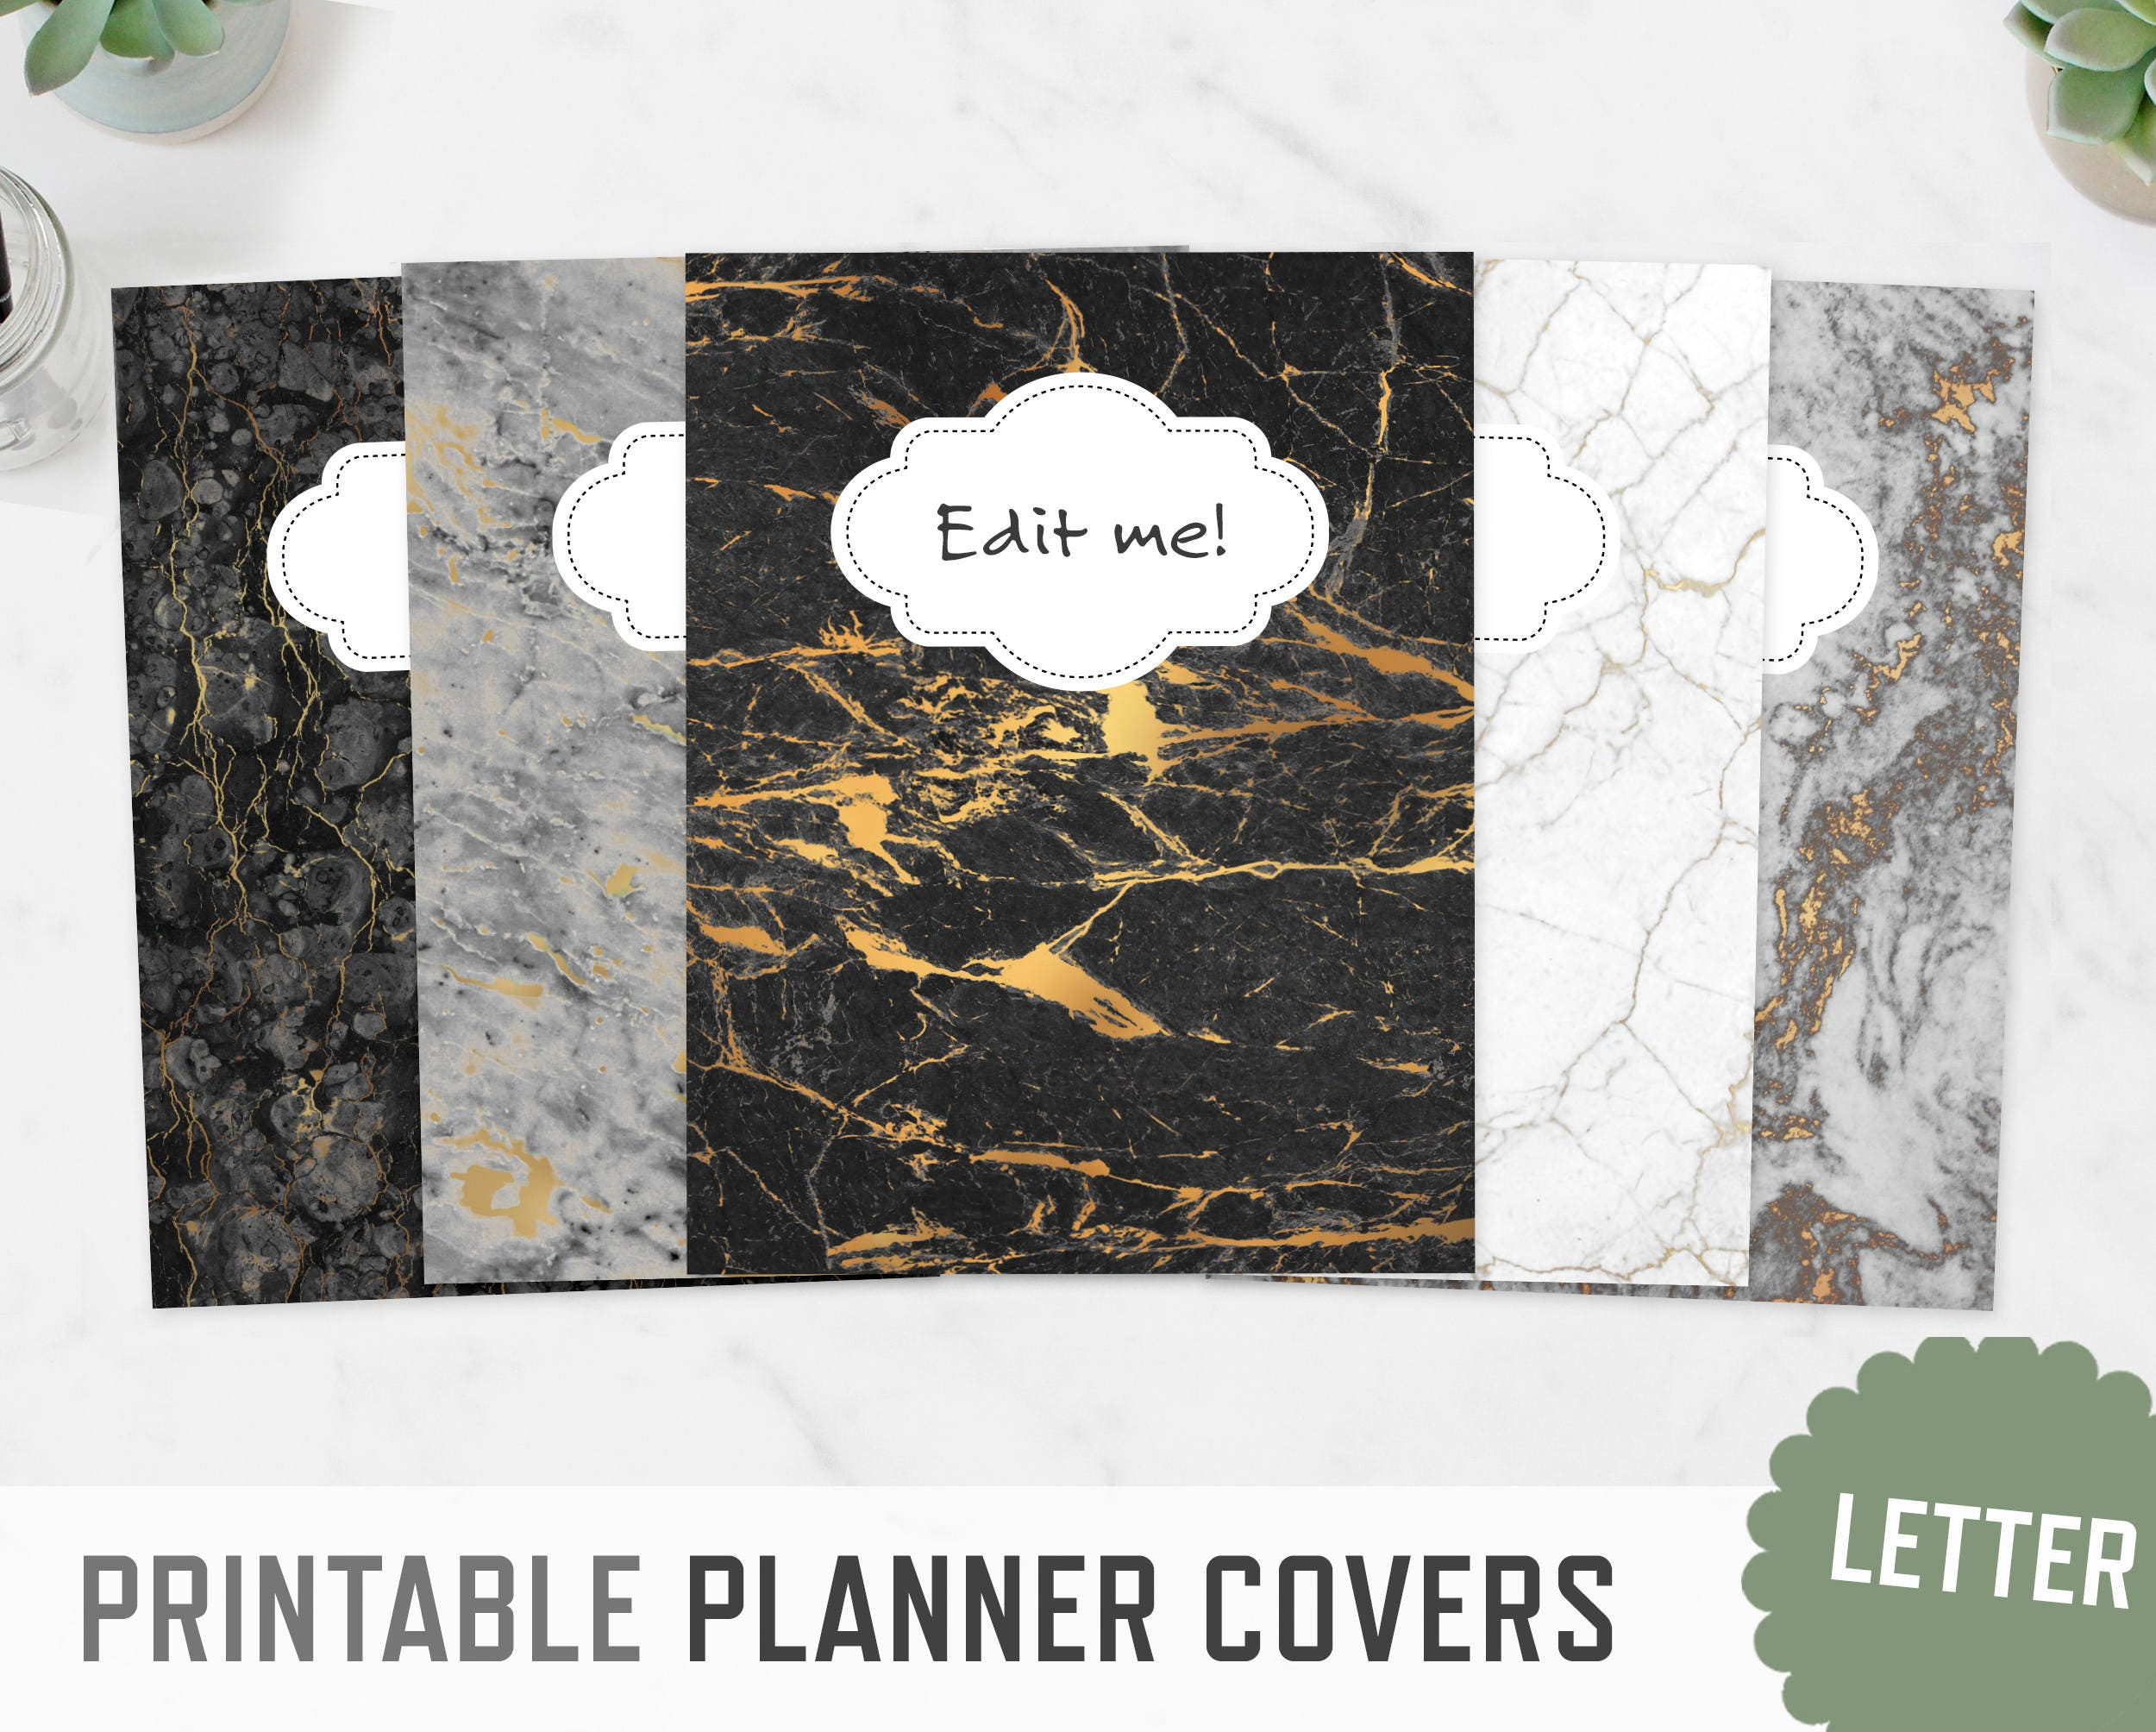 planner covers    letter a4    marble textures spine inserts